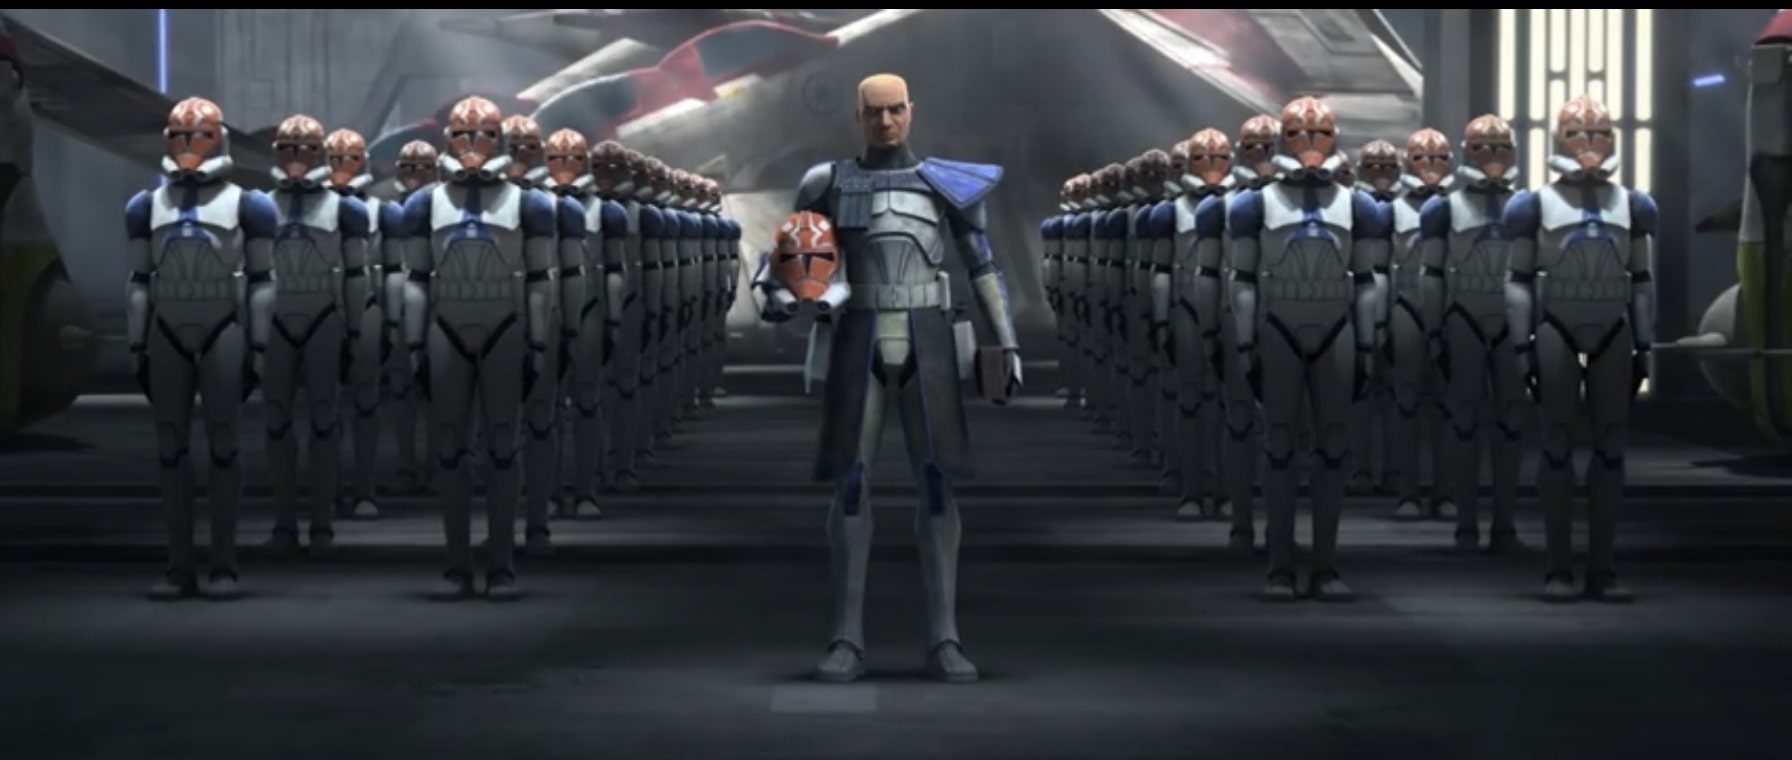 The 332nd Clone Legion